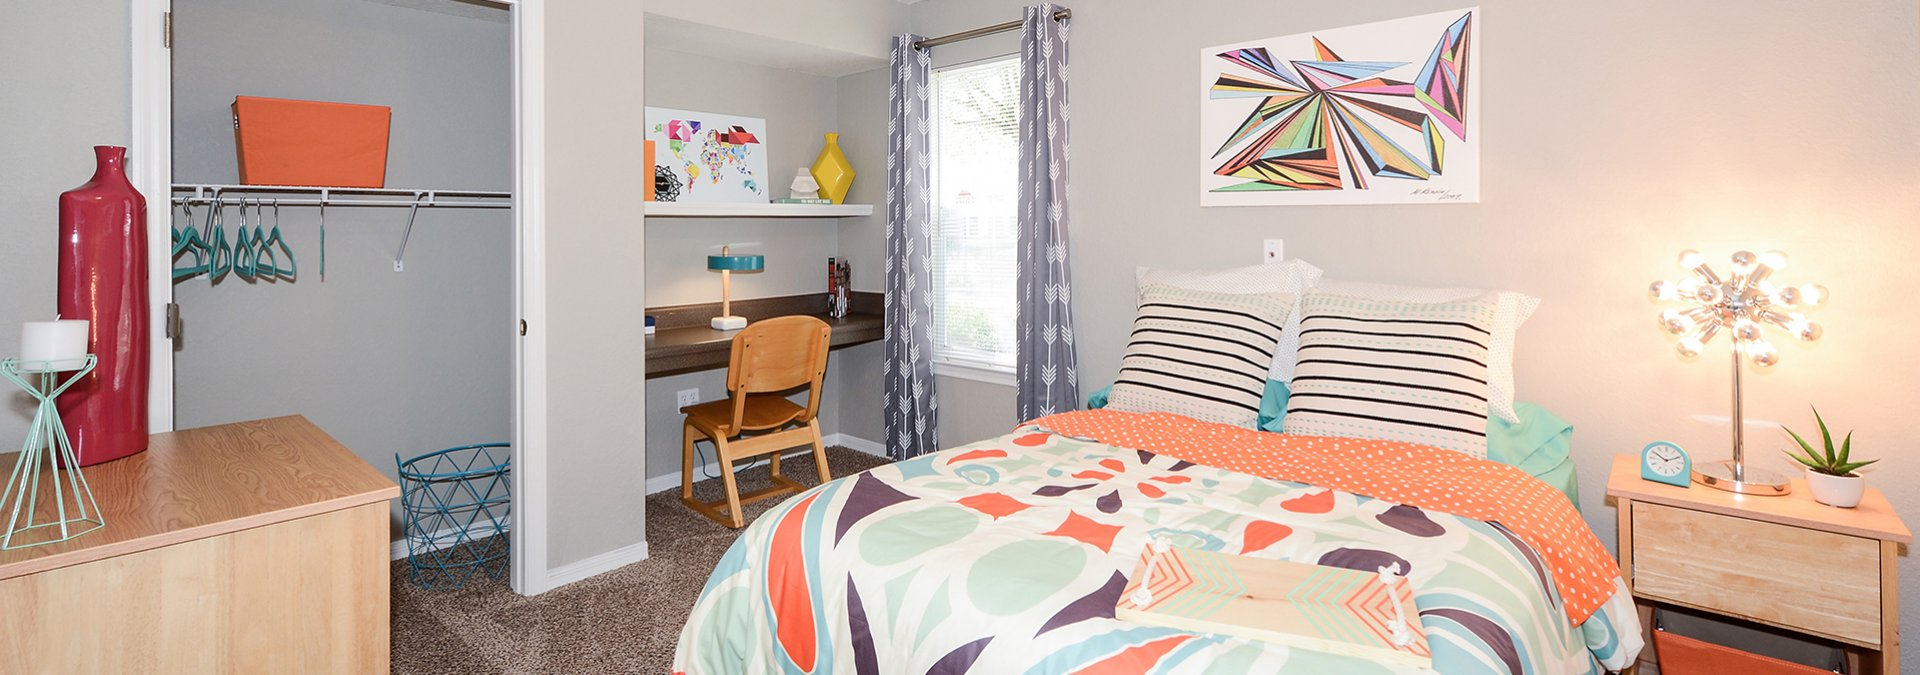 Spacious Bedroom | USF Off Campus Housing | The Social at South Florida